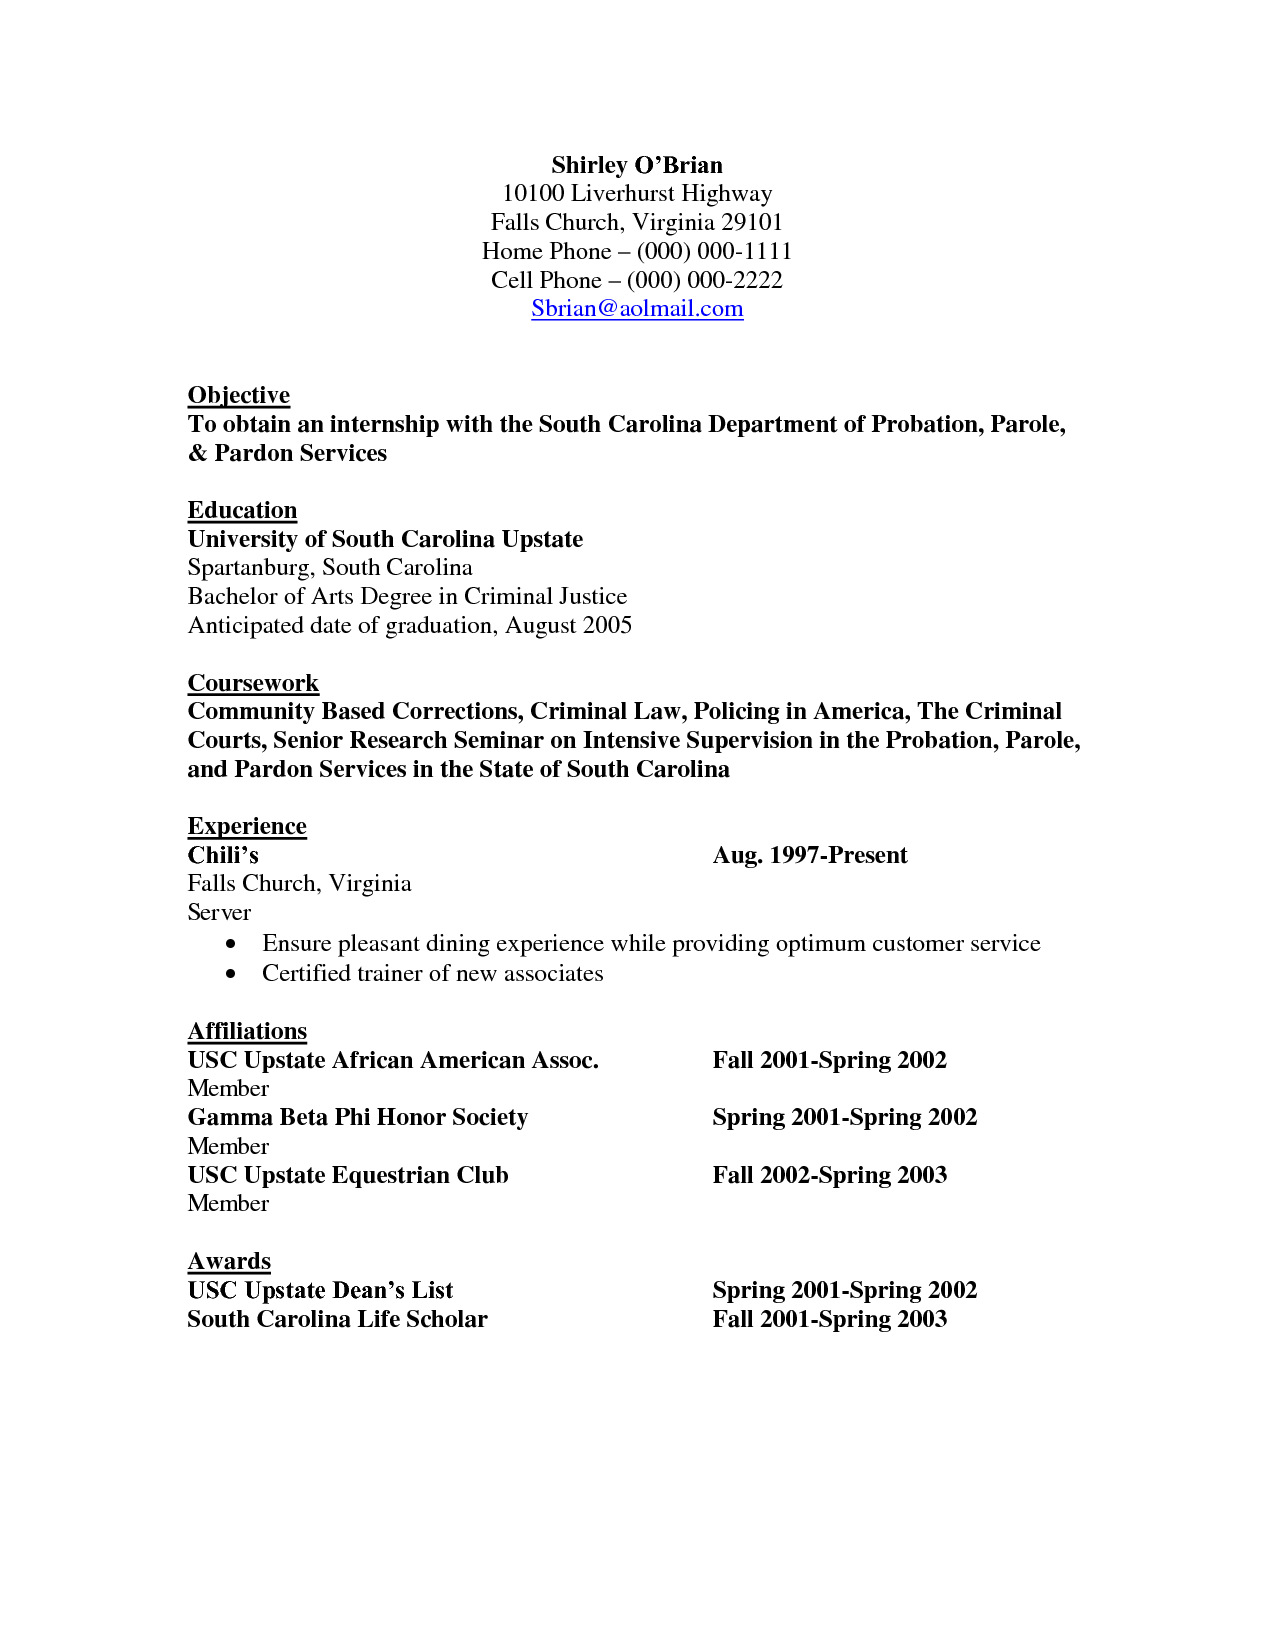 An Objective For A Resume Objective Resume Criminal Justice  Httpwwwresumecareer